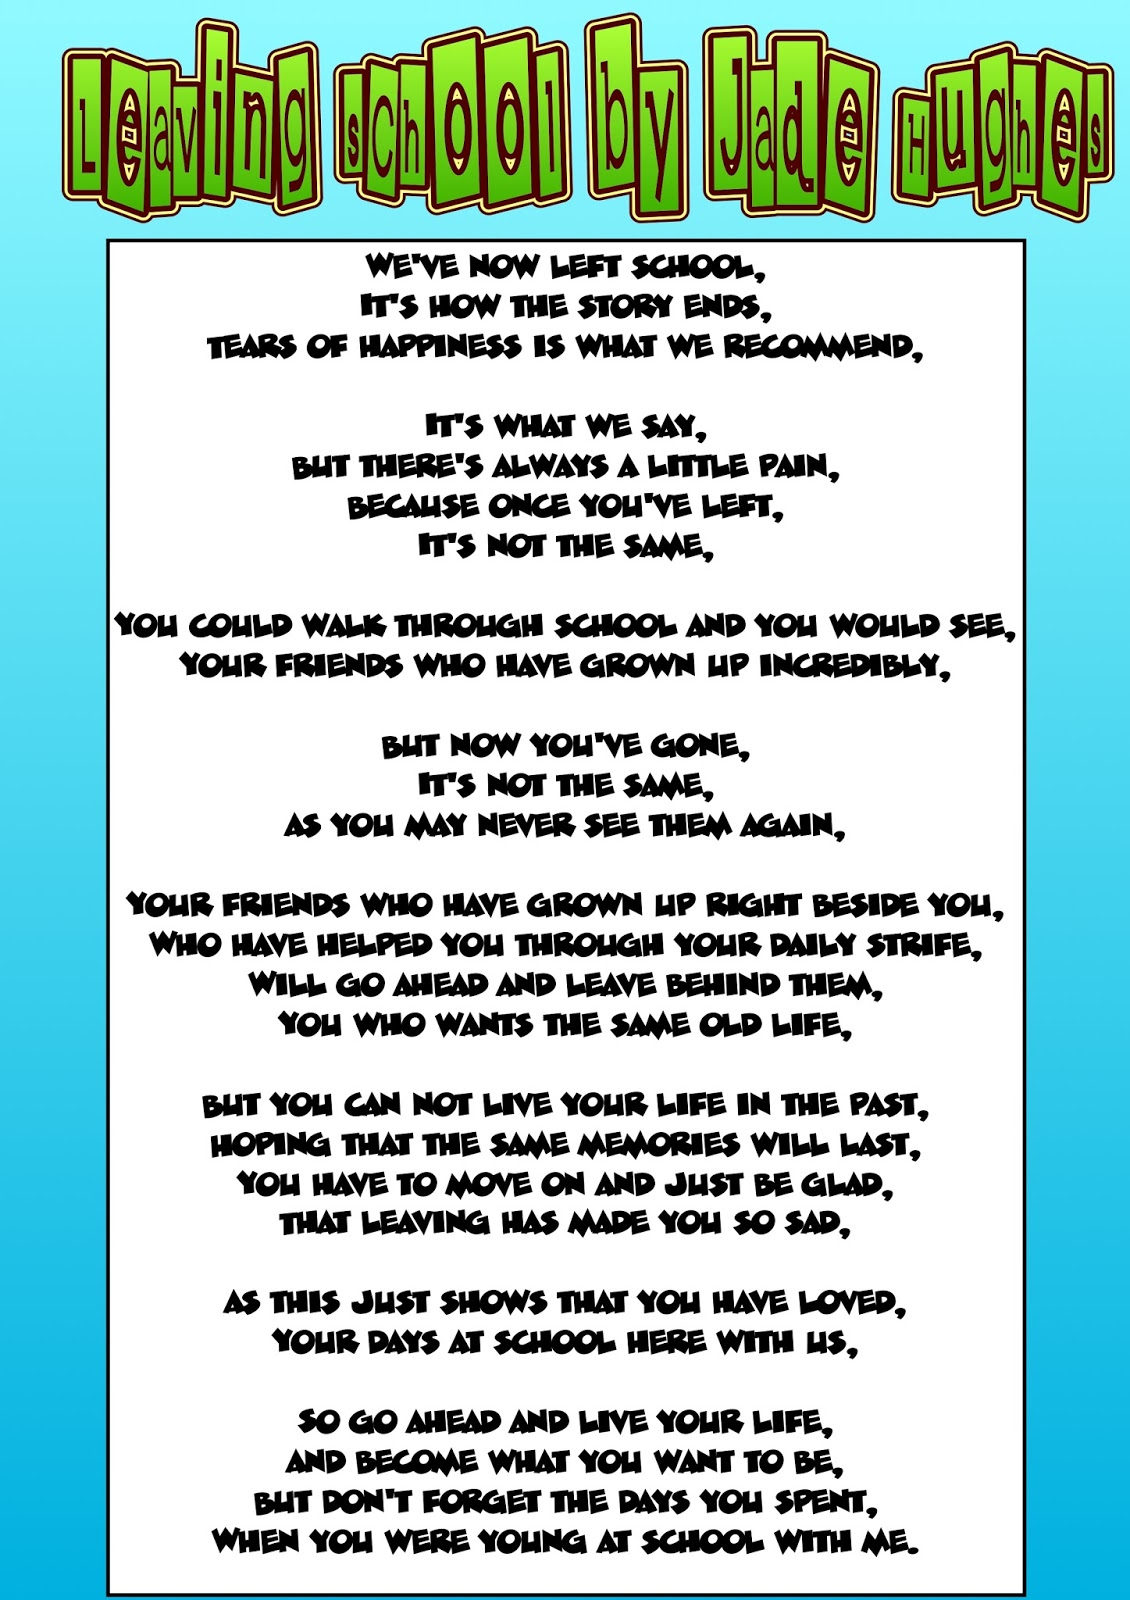 A Lovely Poem for Your Leavers Assembly